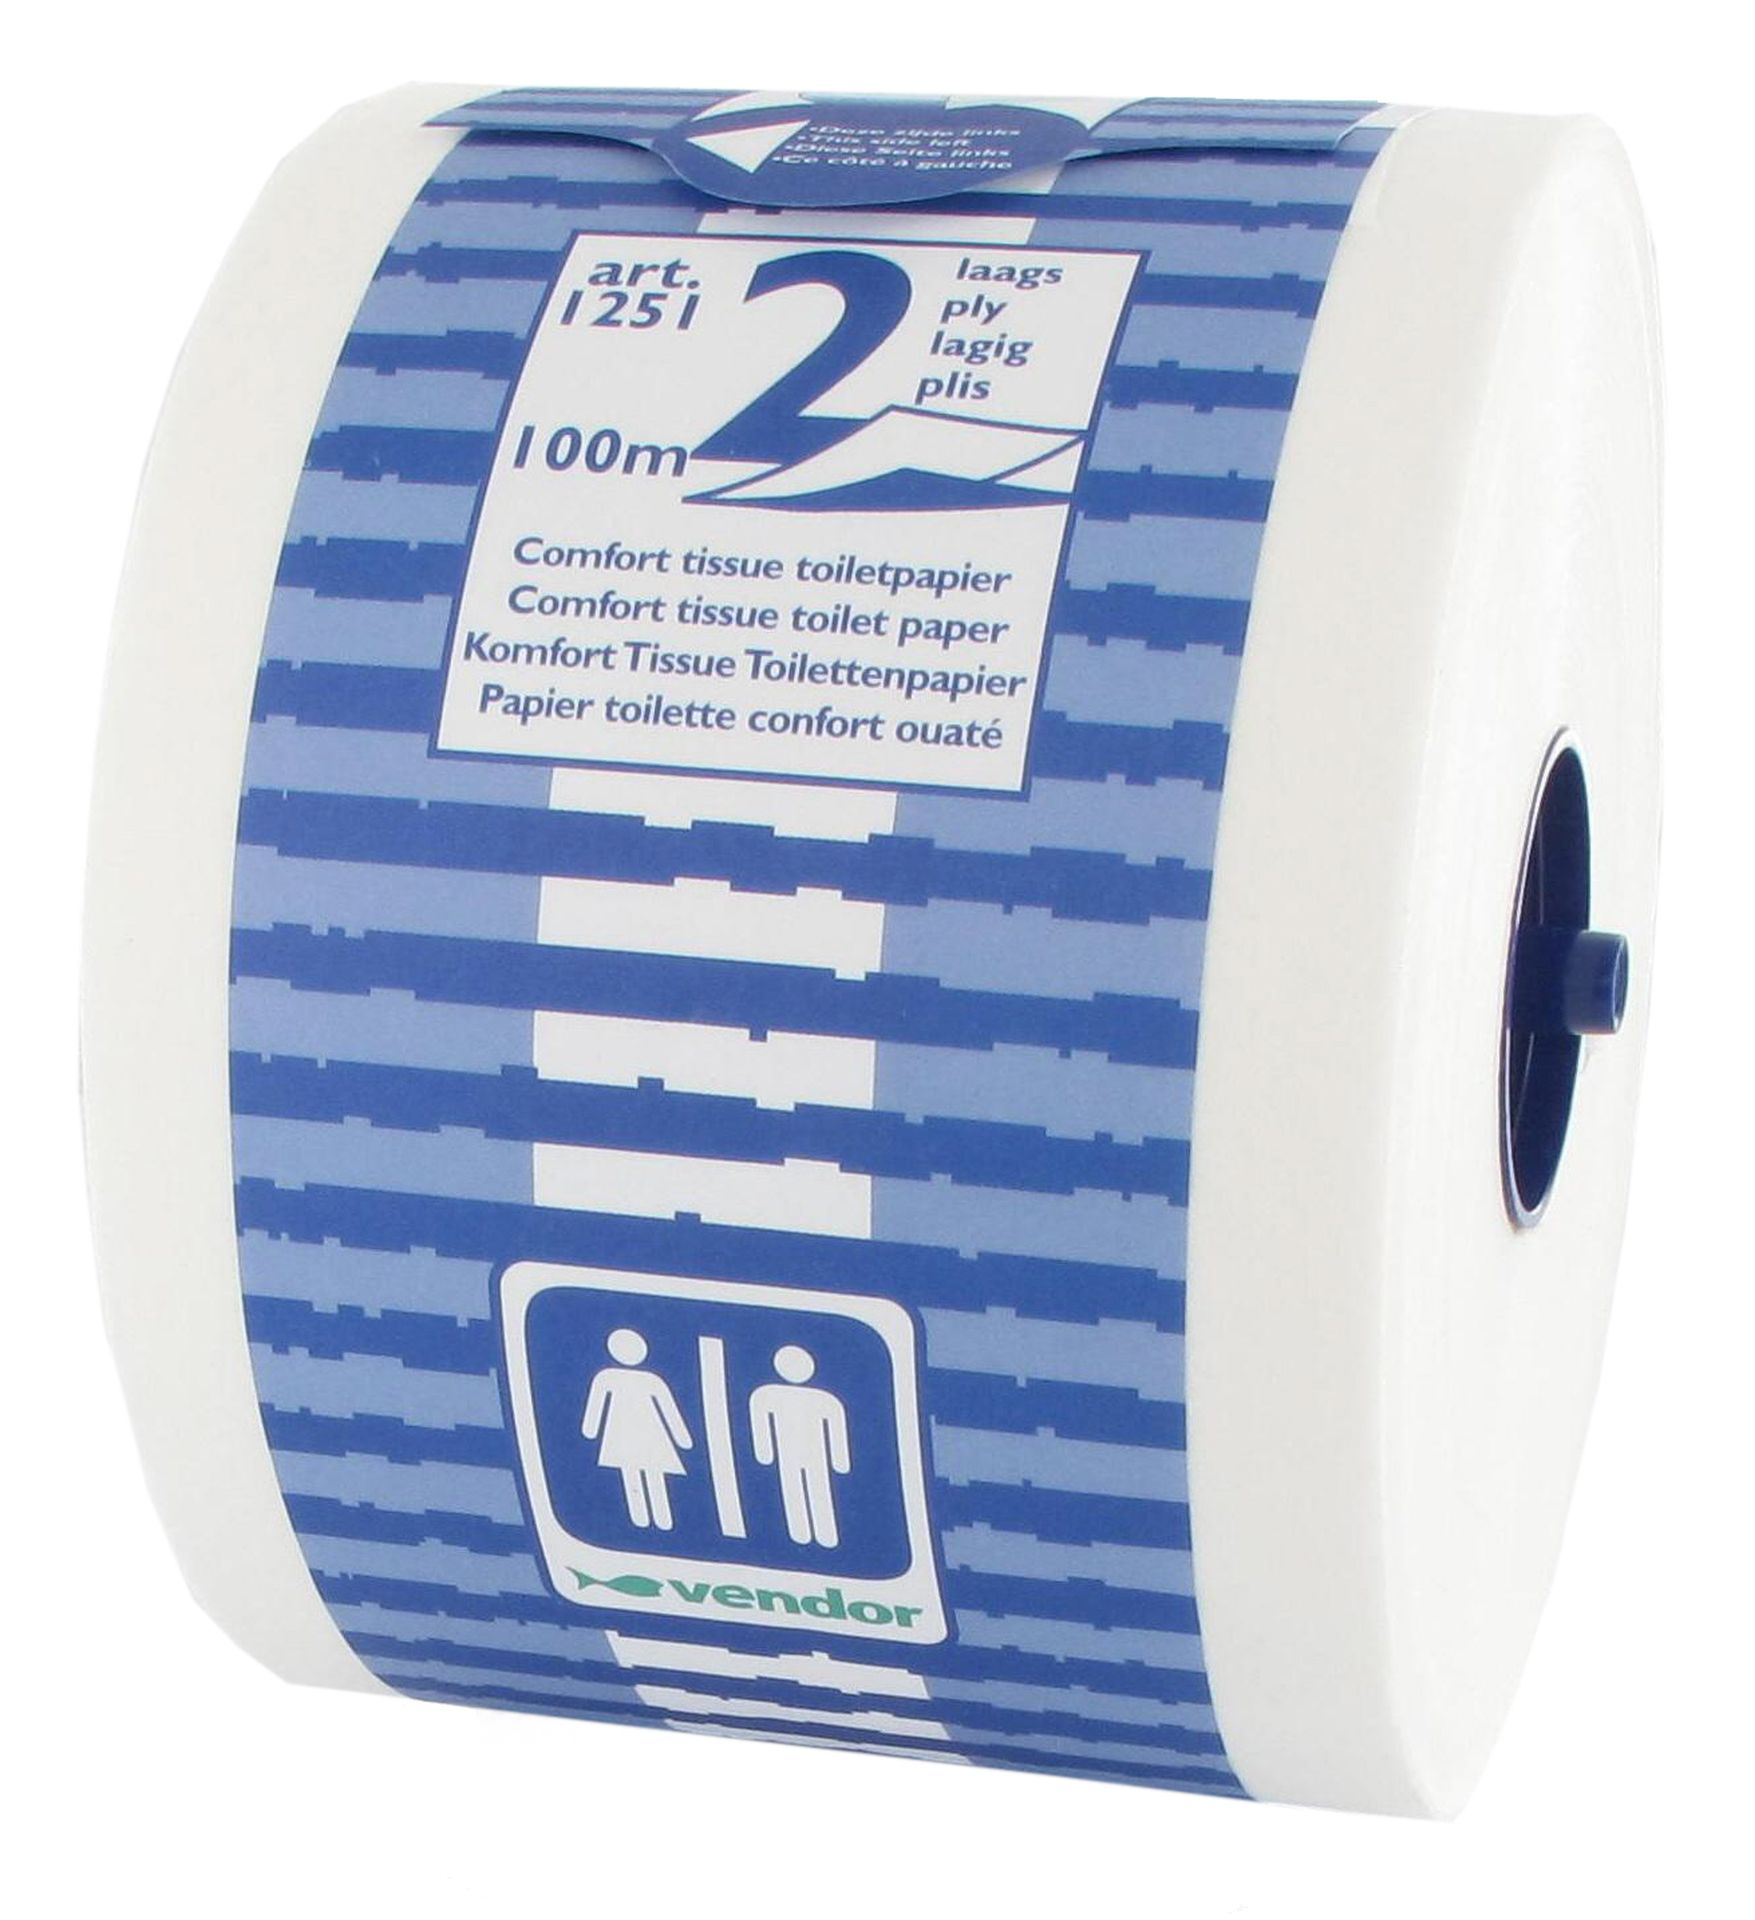 Vendor Toiletpapier 1252.Vendor Tradition Toiletrolhouder De Vries Schoonmaak